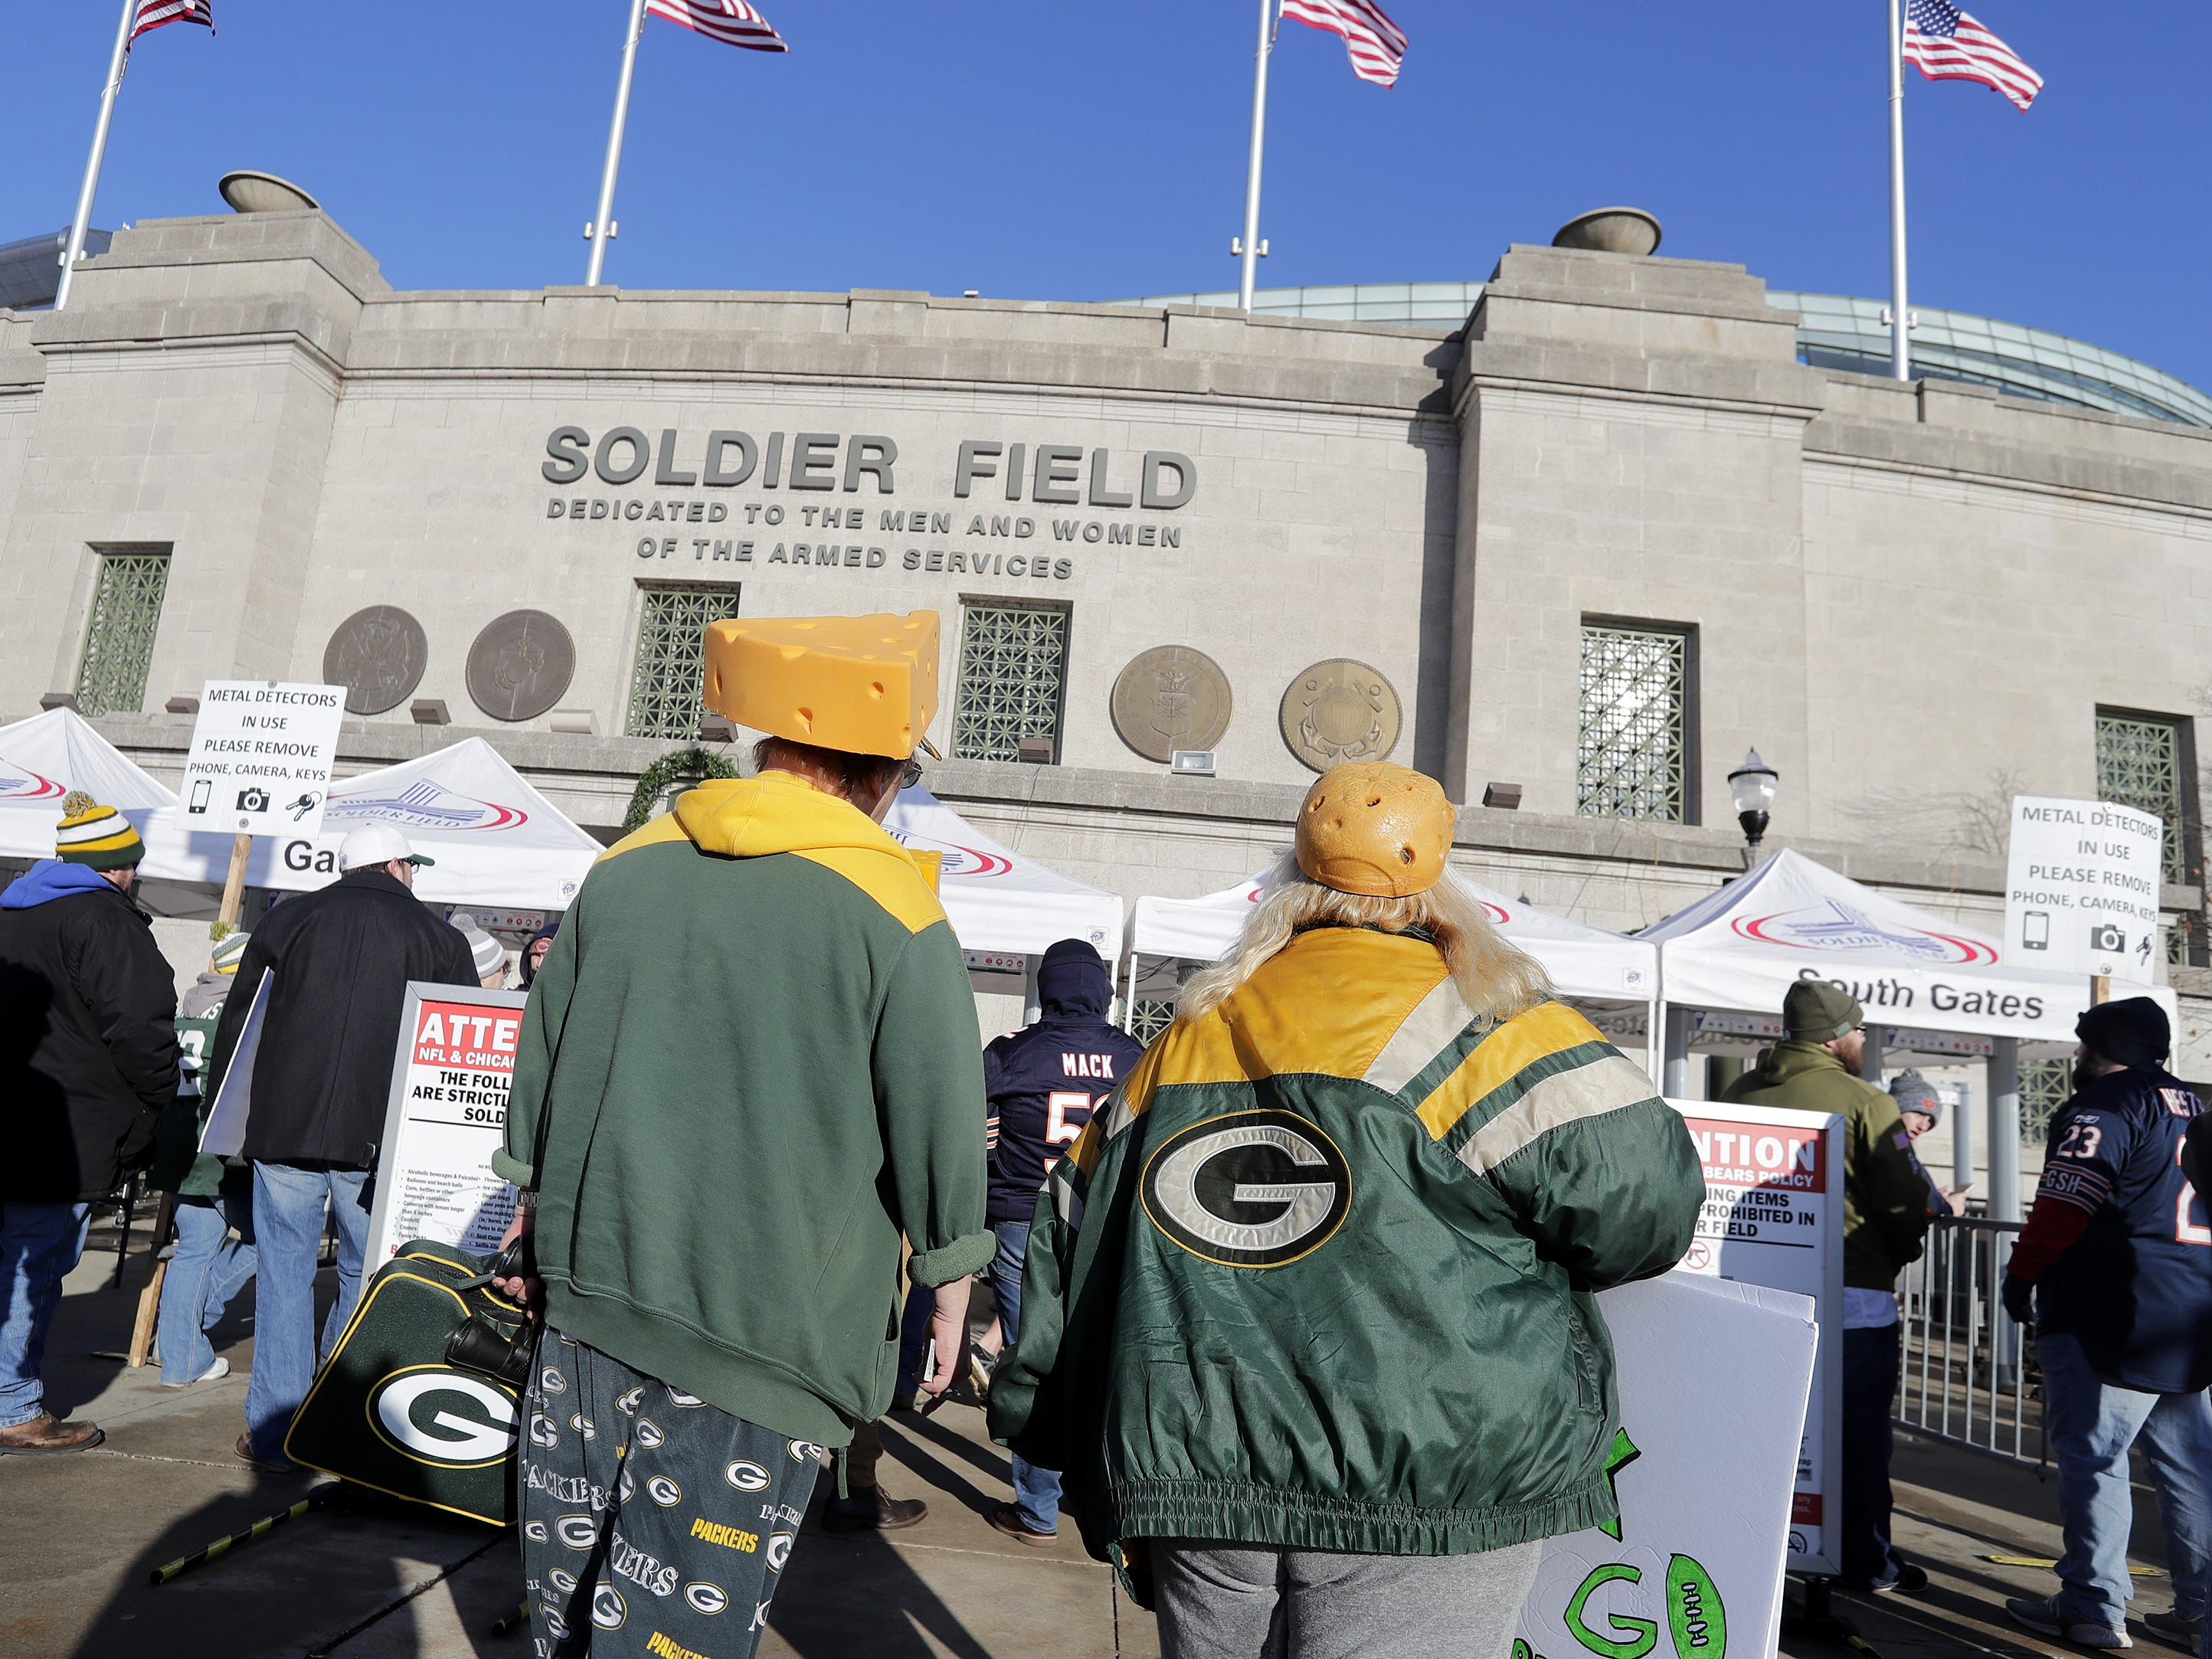 Fans arrive for the Packers game against the Bears at Soldier Field on Sunday, December 16, 2018 in Chicago, Illinois.